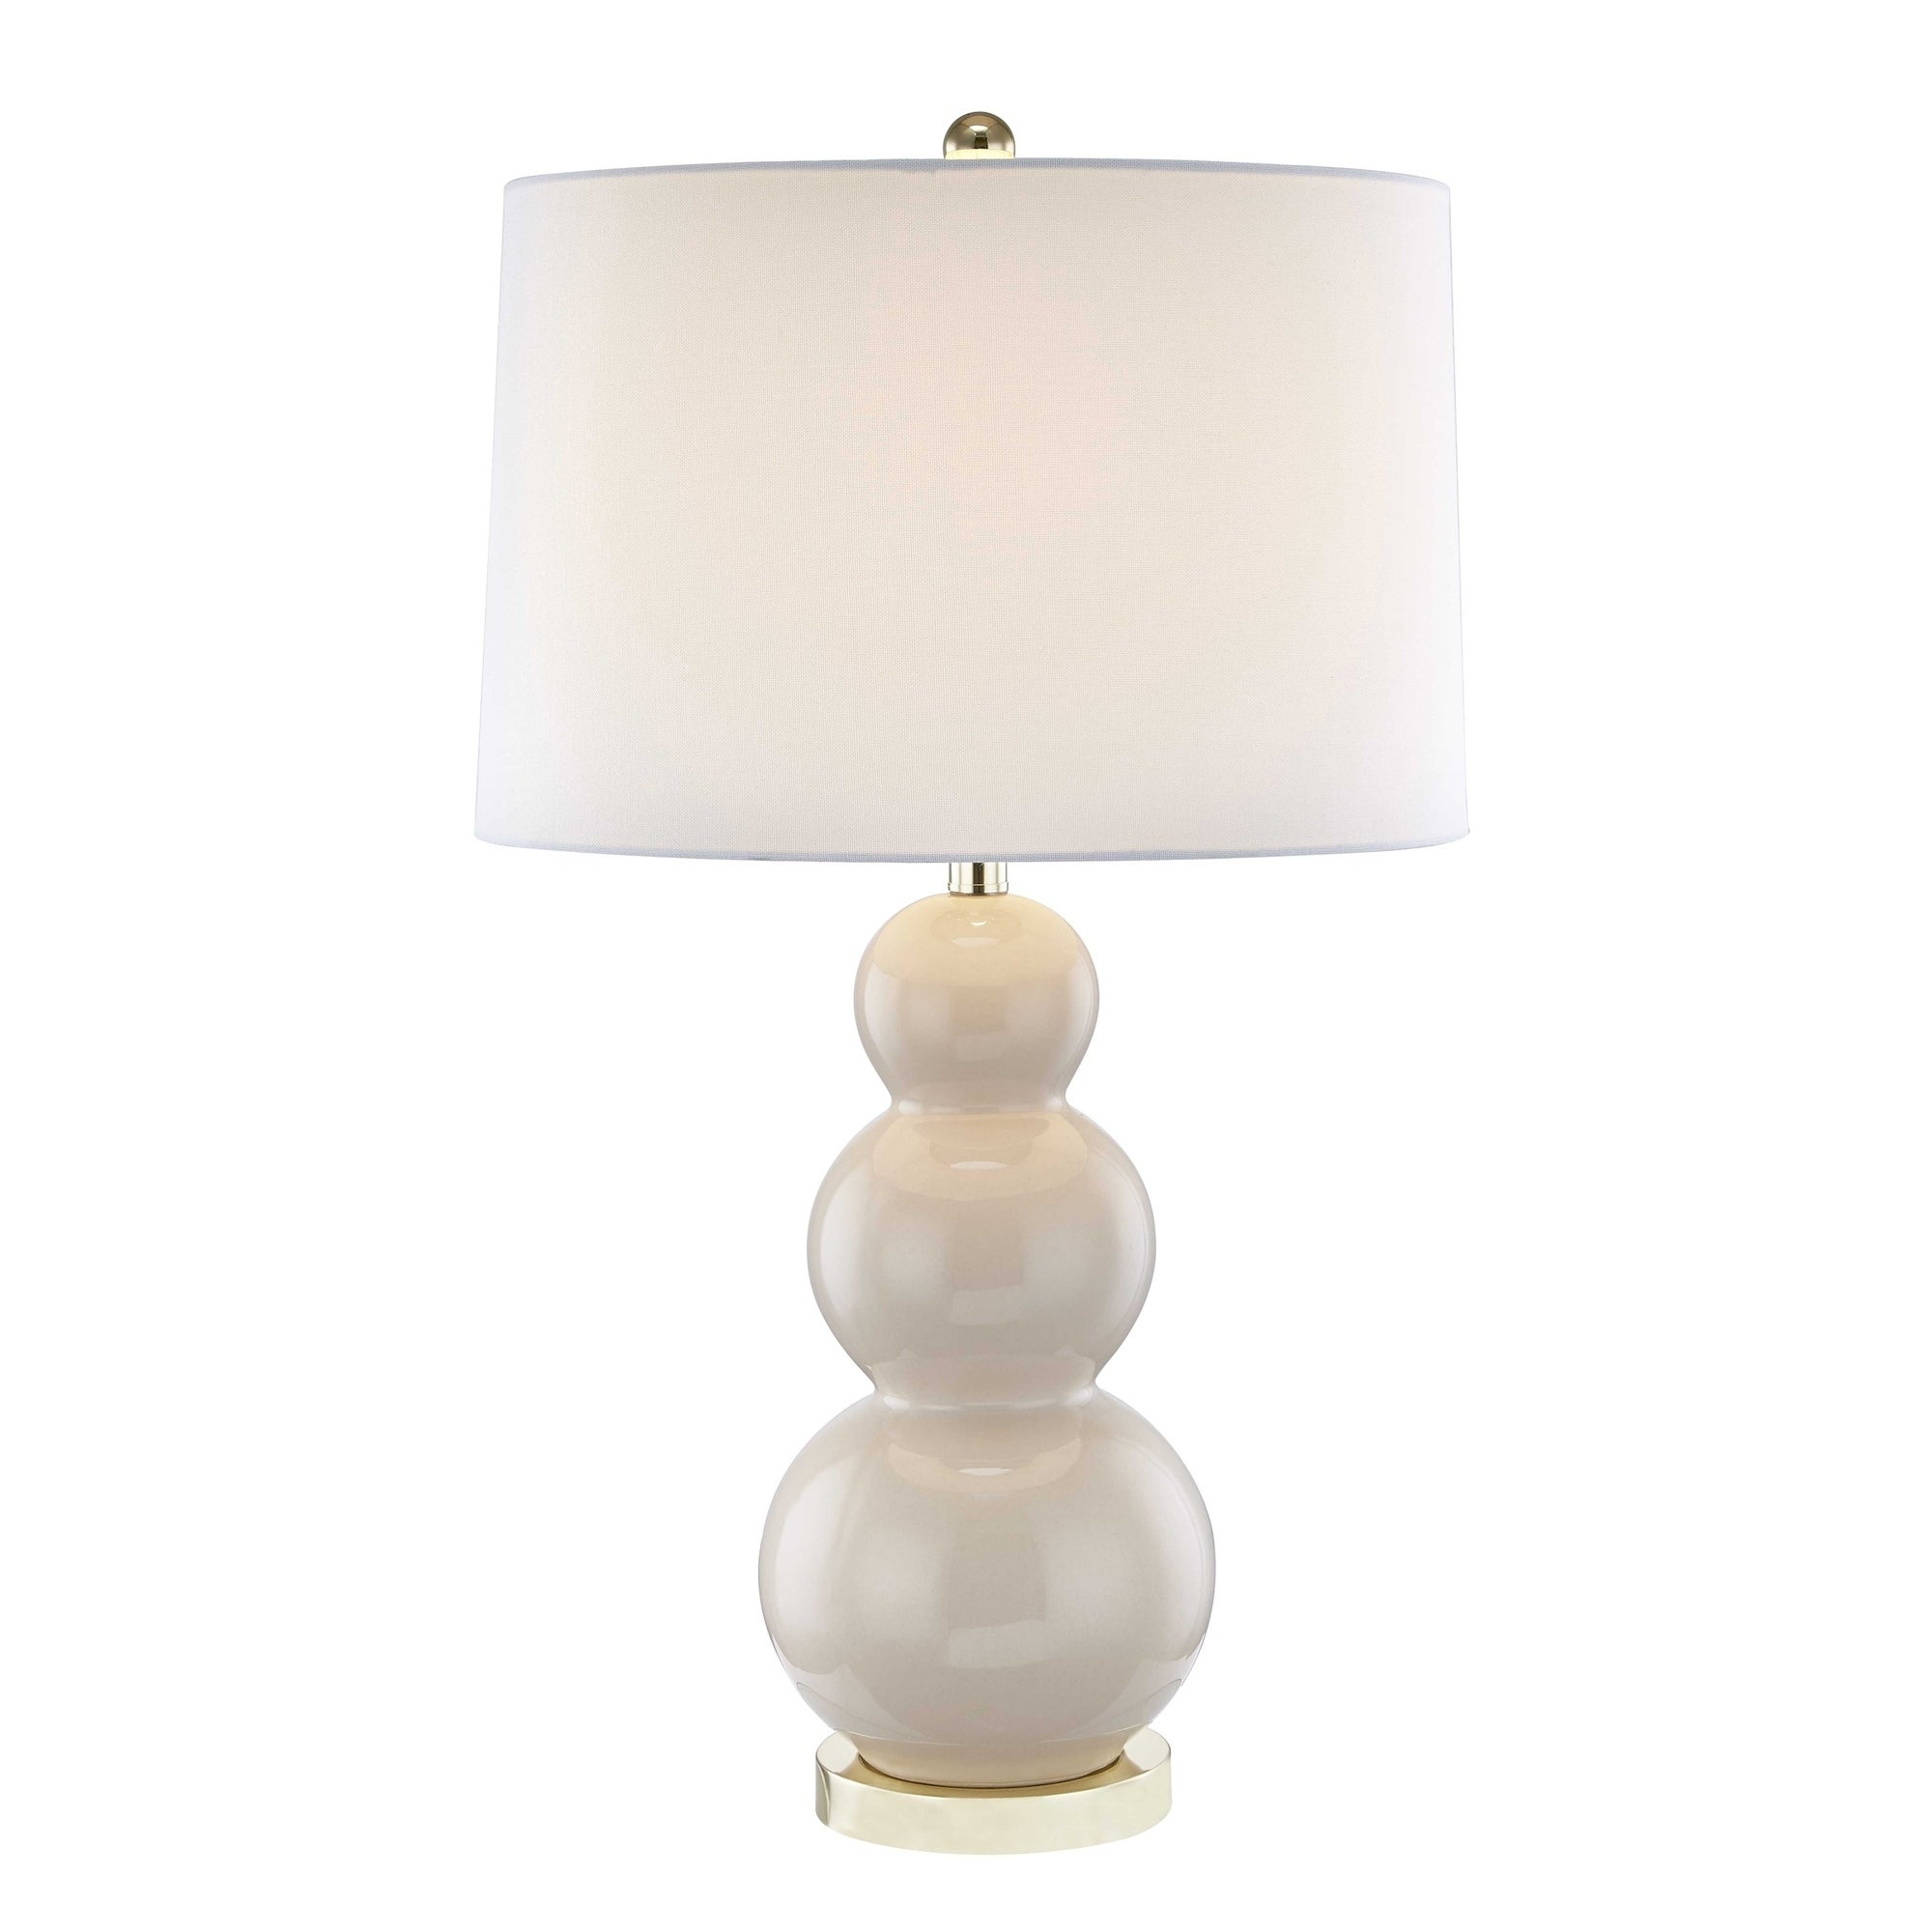 Shop Ceramic Triple Gourd Table Lamp Cream 30 Free Shipping